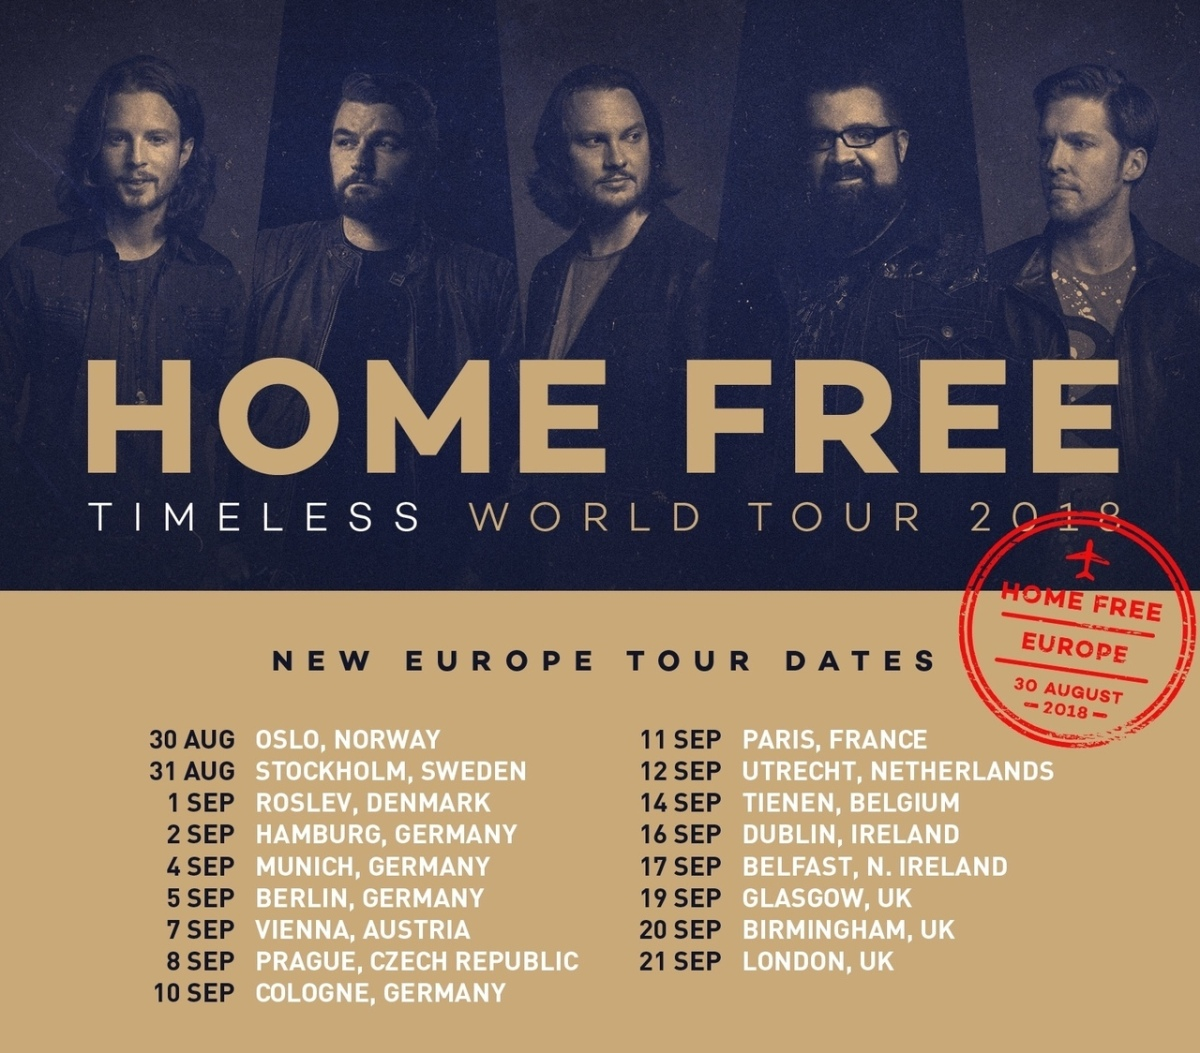 Home free tour dates in Brisbane